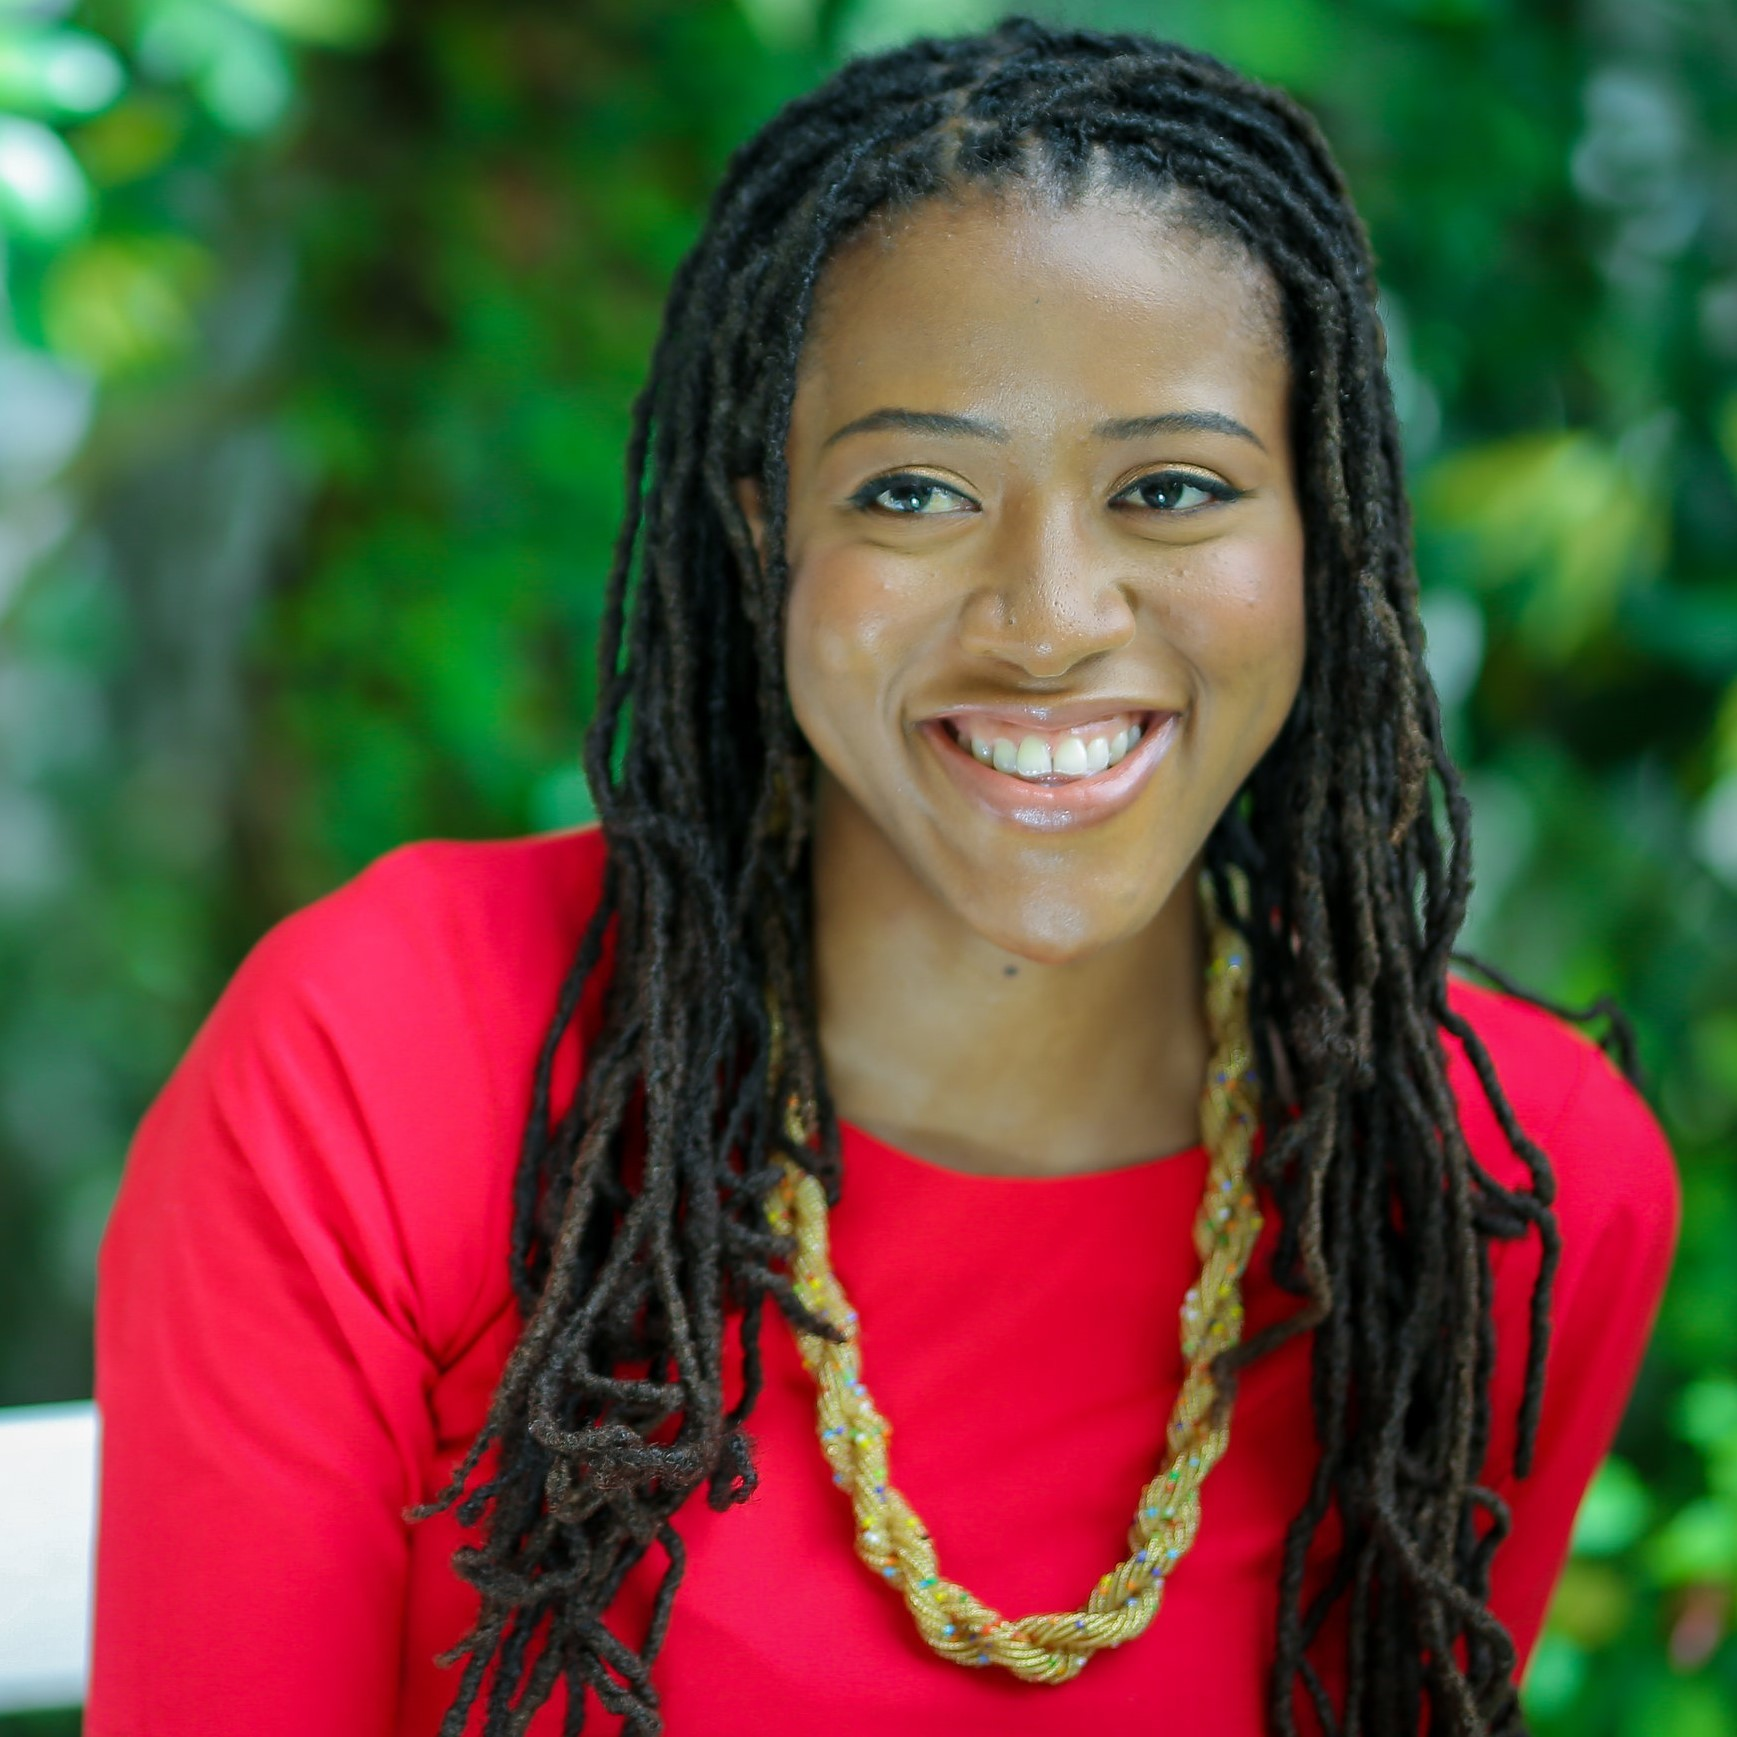 Shawna-Kaye helps people get into their dream schools and programs